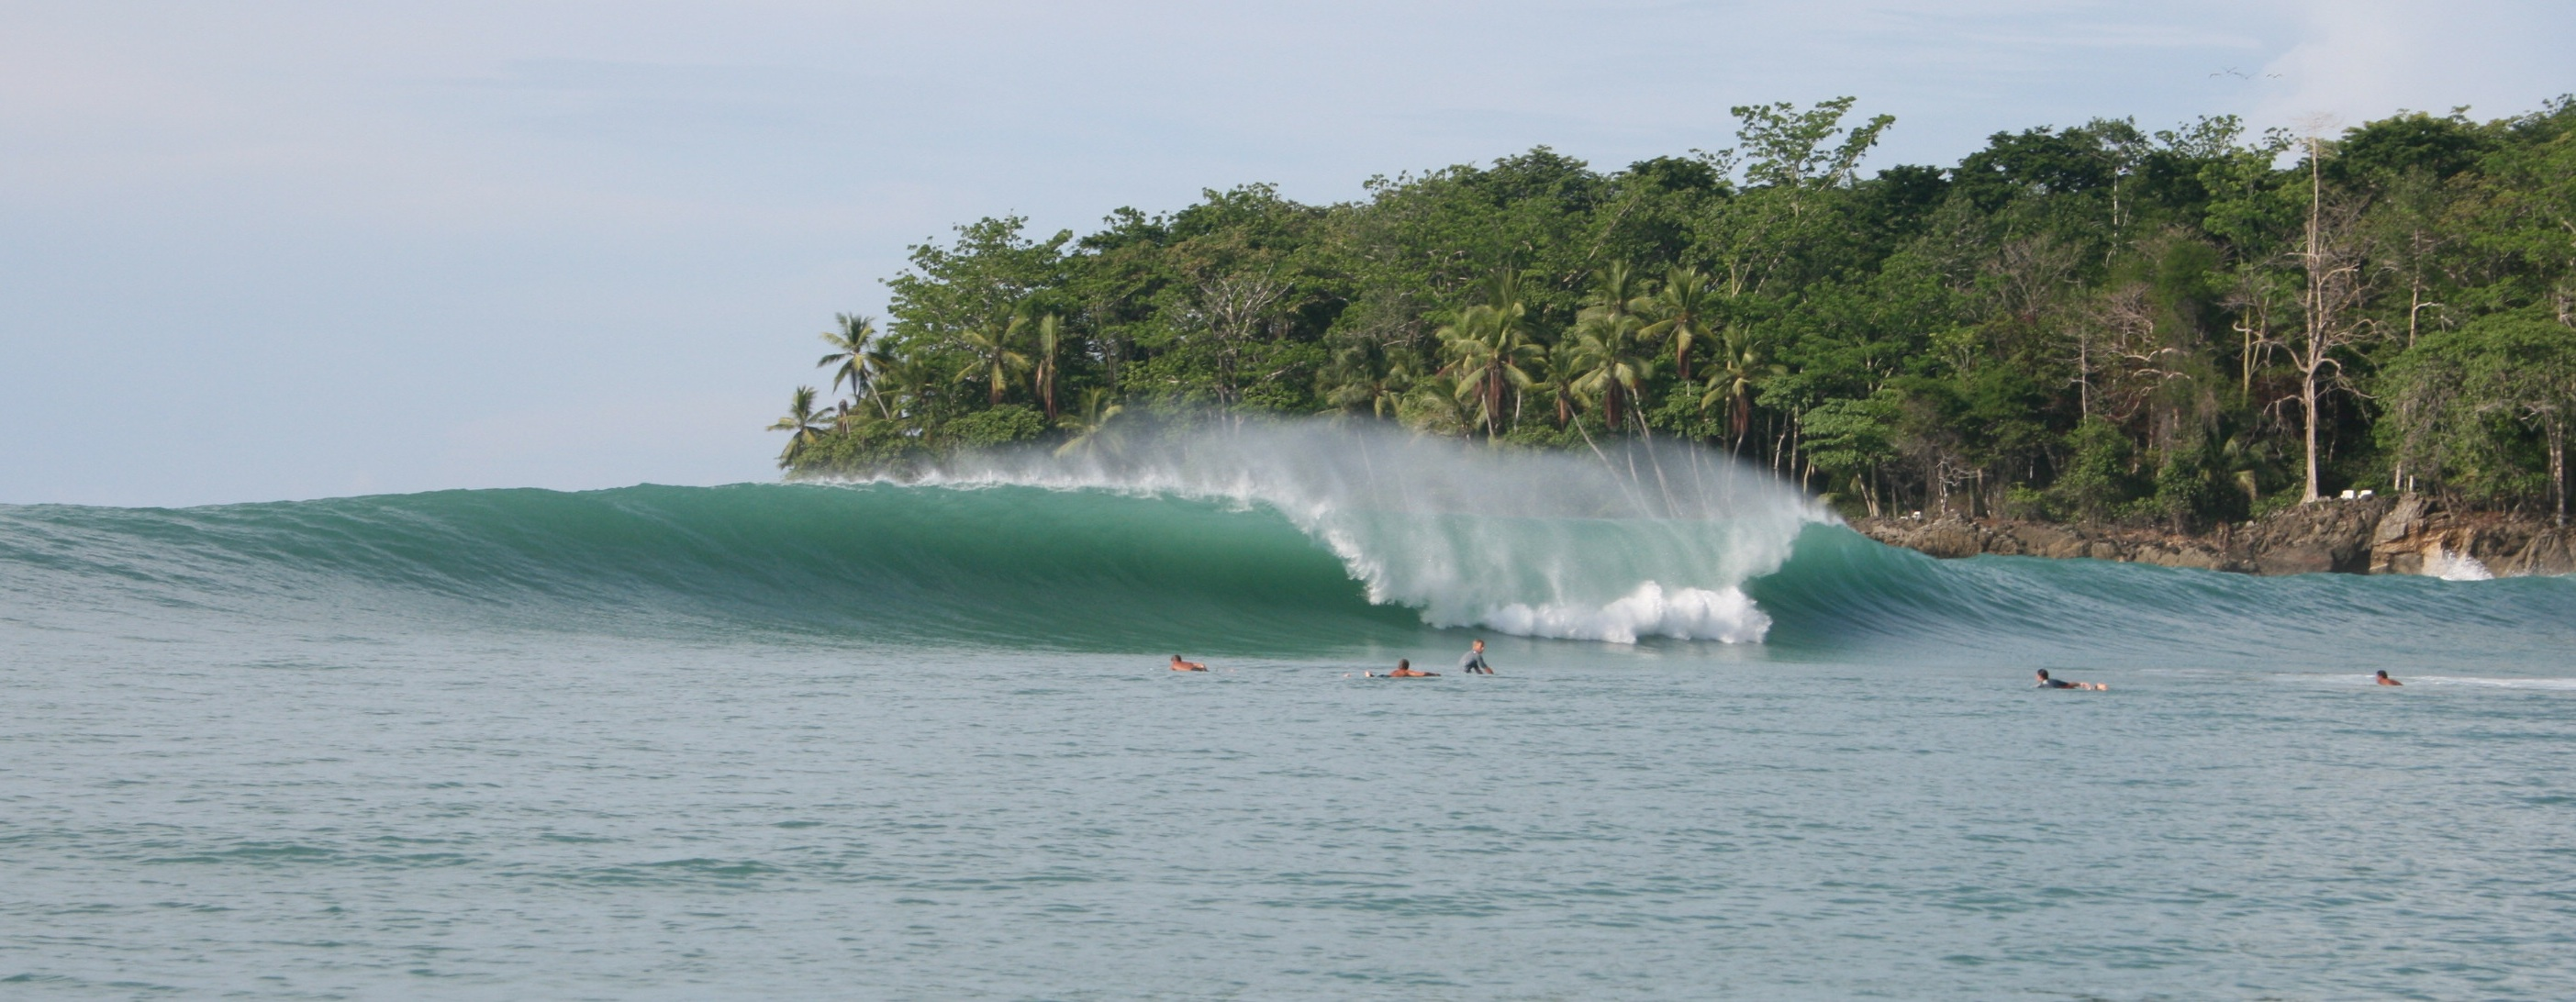 playa jaco costa rica map with Surf Trip Para A Costa Rica Pura Vida on Isla Del Ca c3 b1o also Costa Rica moreover Gold mines abangares tour rates additionally Tango Mar Resort besides Our Weather In San Ramon De Alajuela Costa Rica 2012.